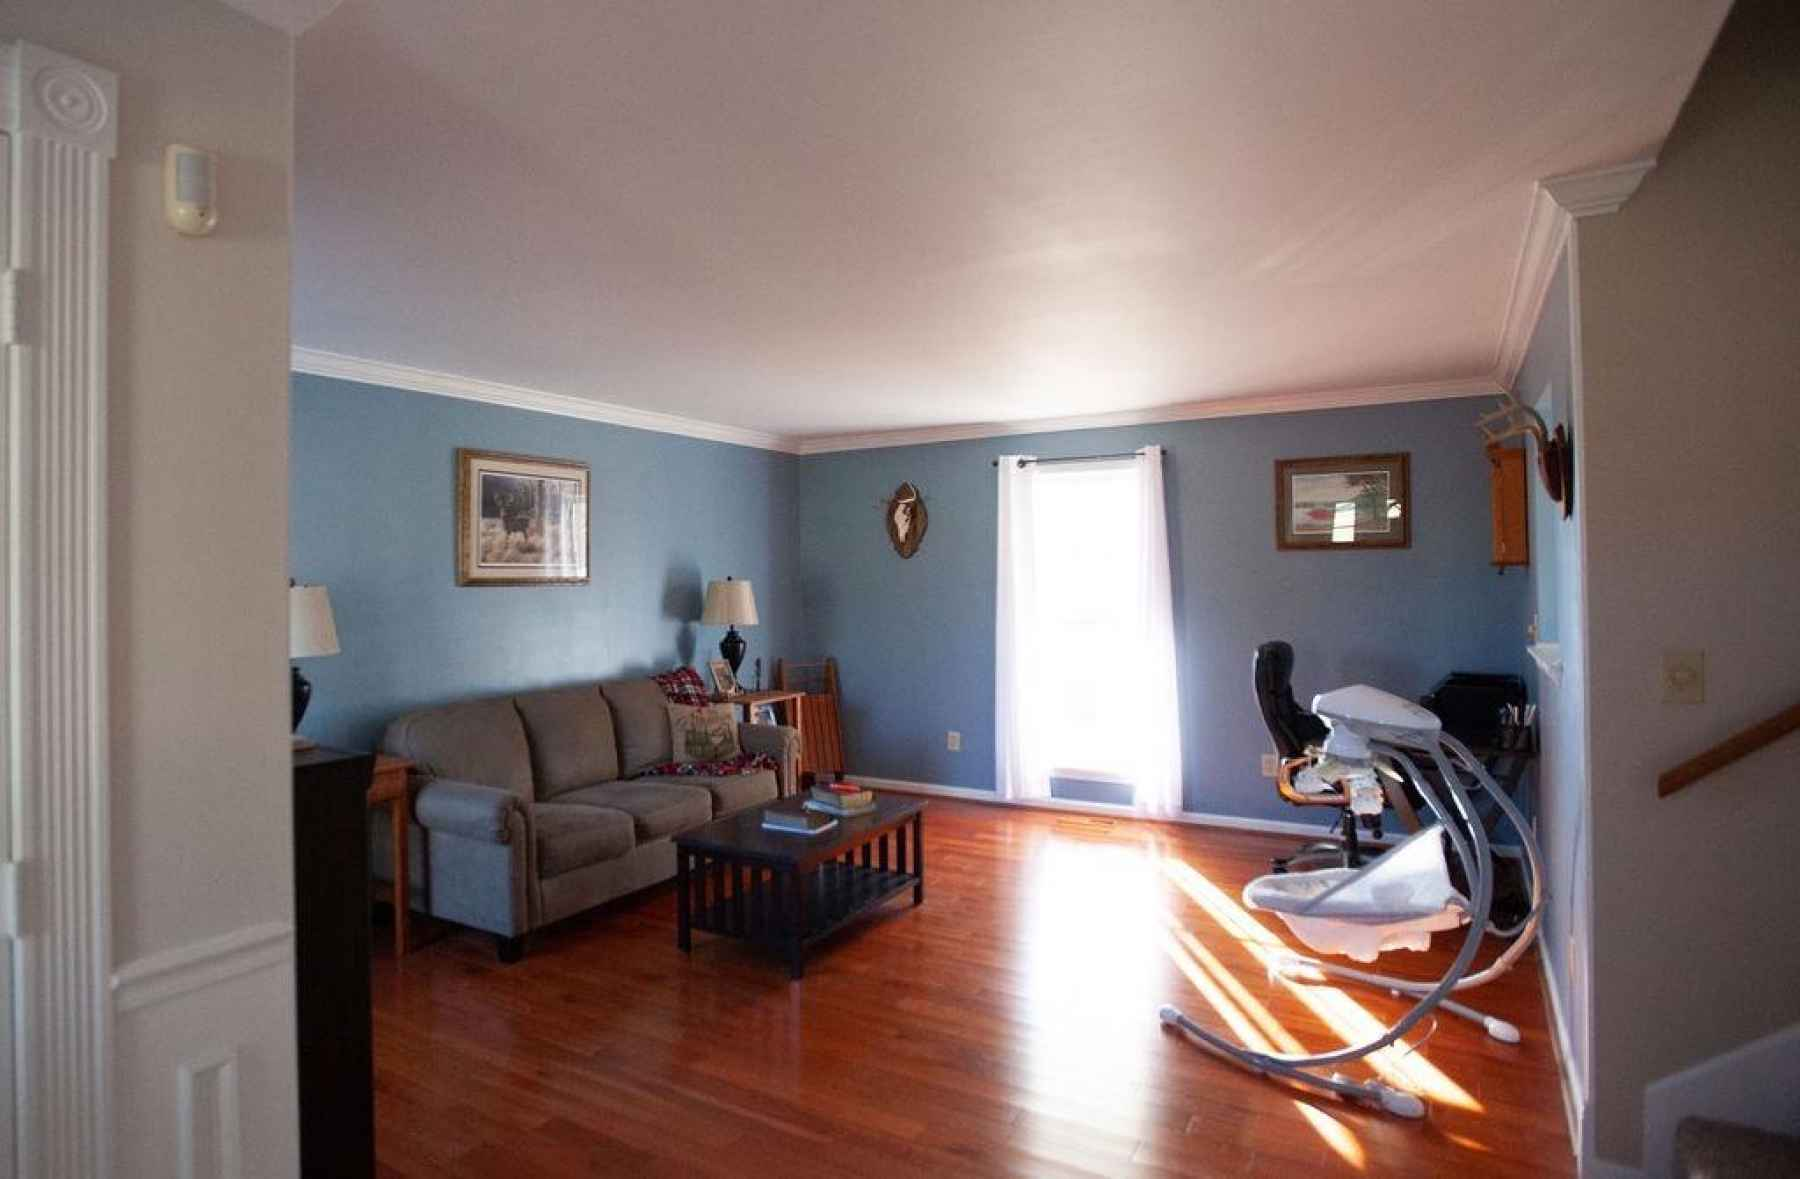 Spacious and beautiful Living Room! Notice the freshly painted walls and beautiful crown molding that helps create an inviting and comfortable setting!